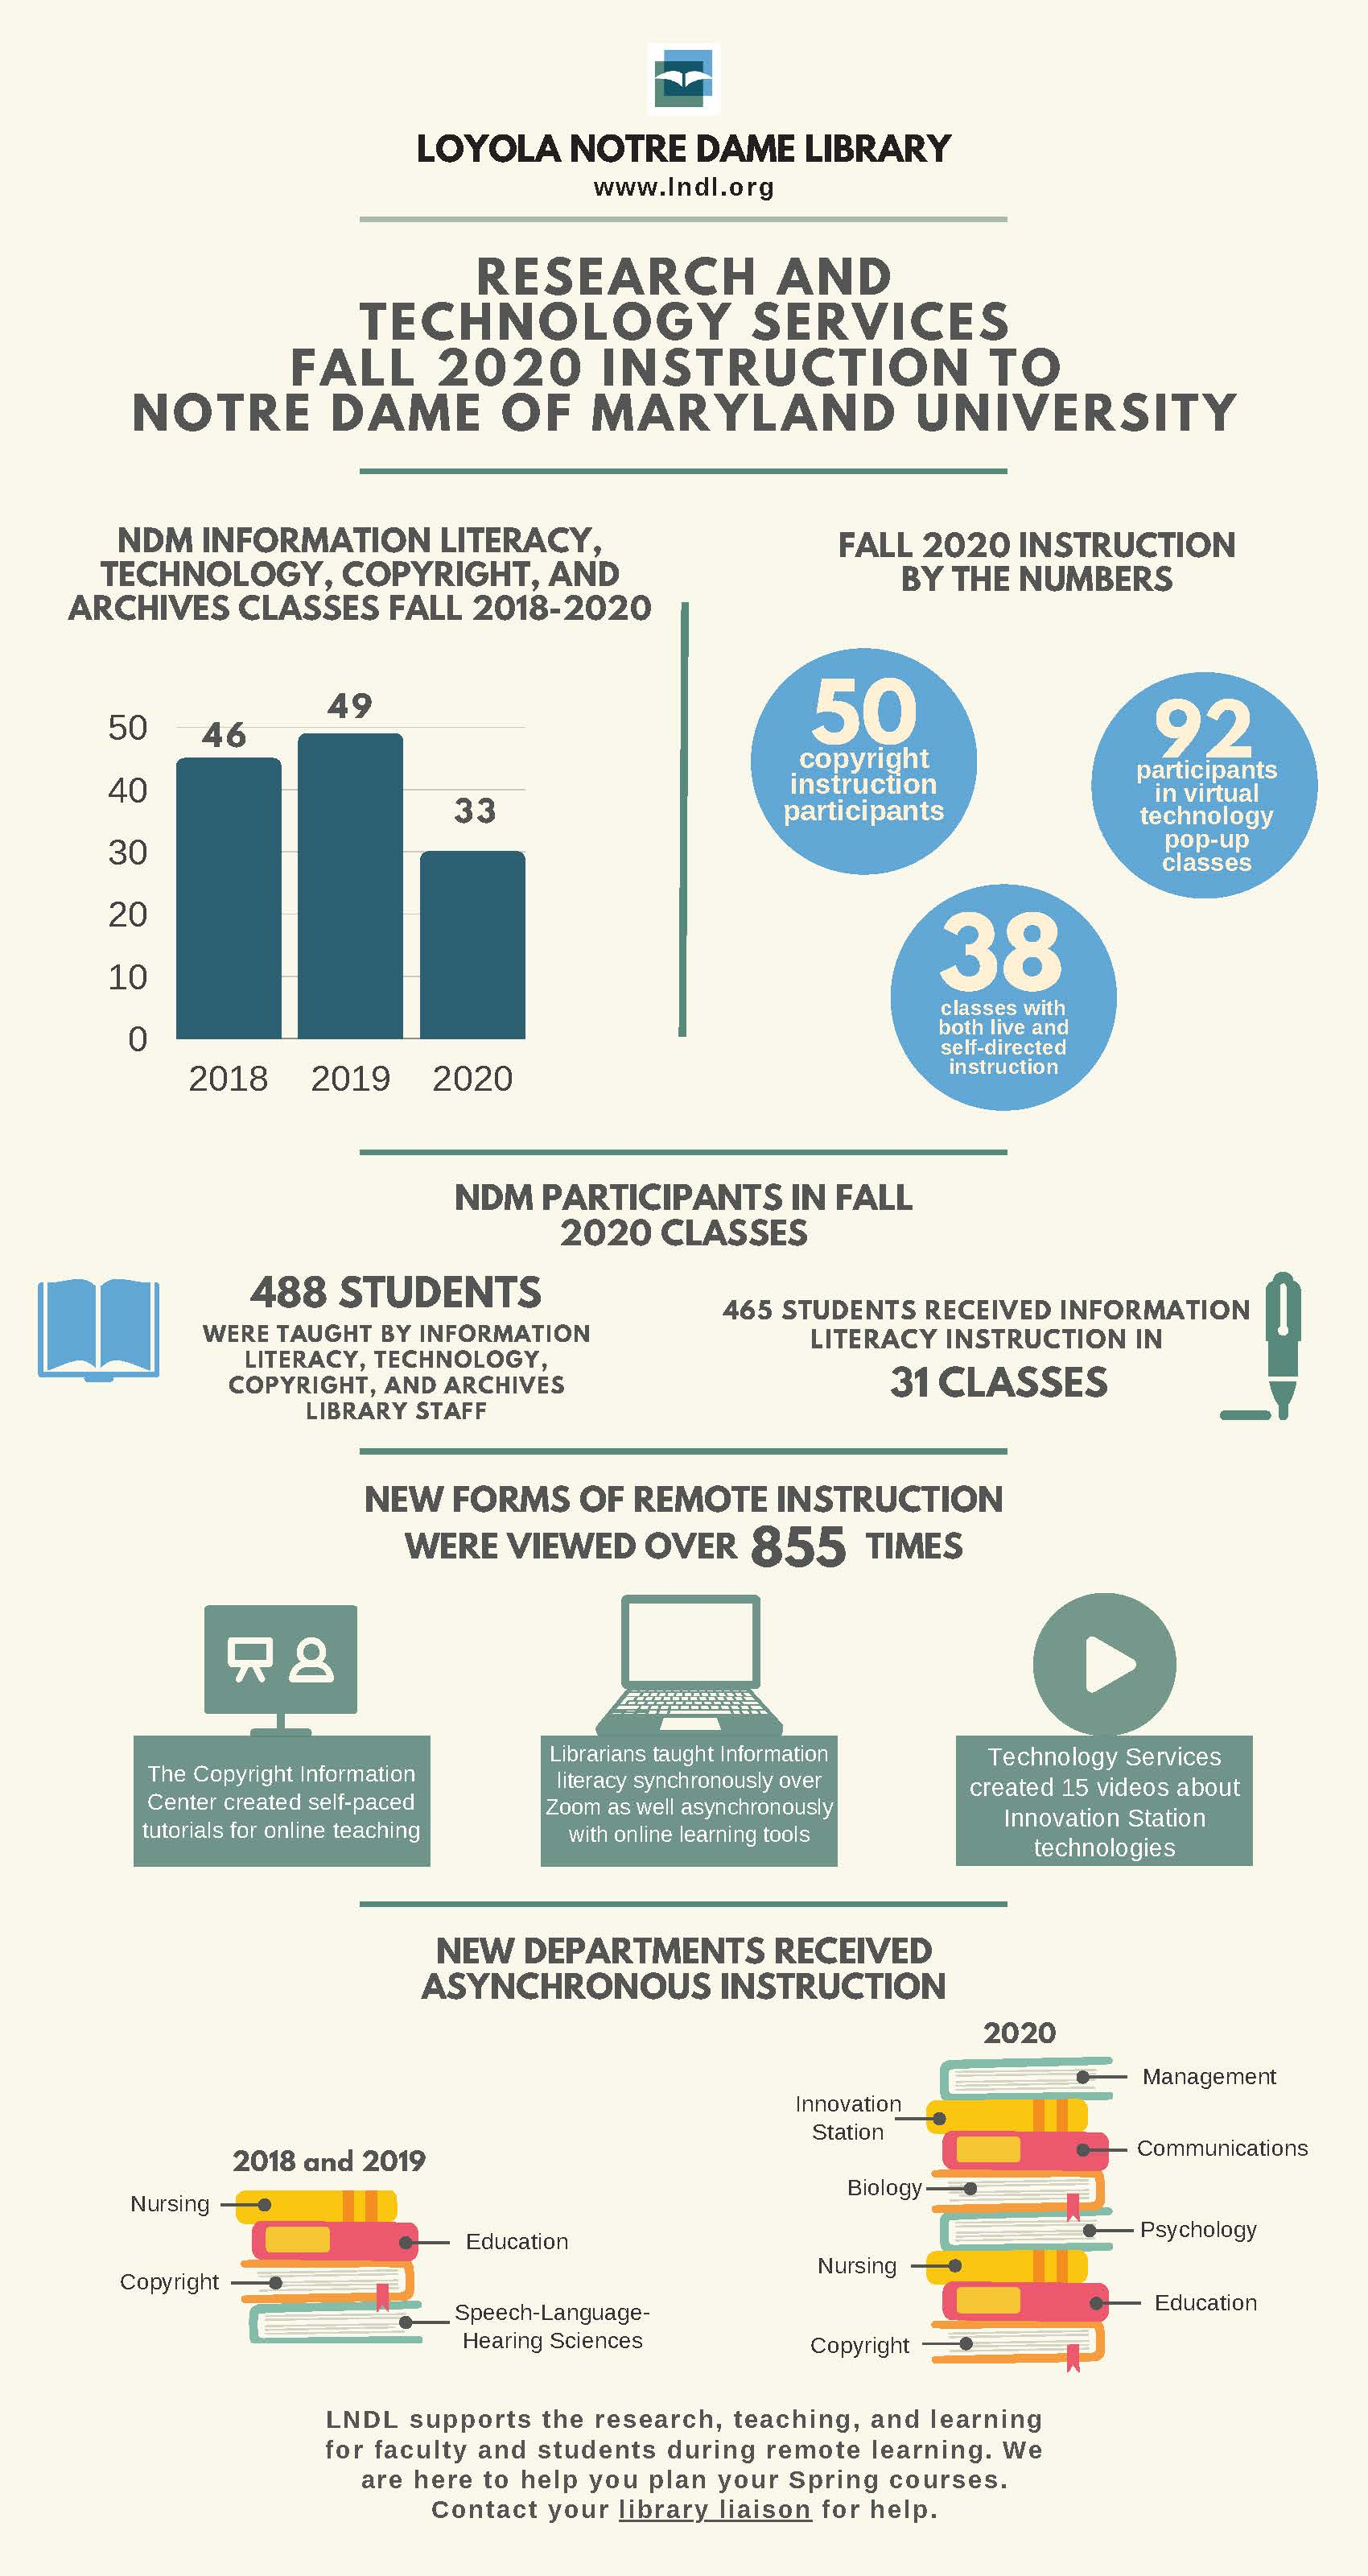 Research and Technology Services Fall 2020 Instruction to Notre Dame of Maryland University Infographic